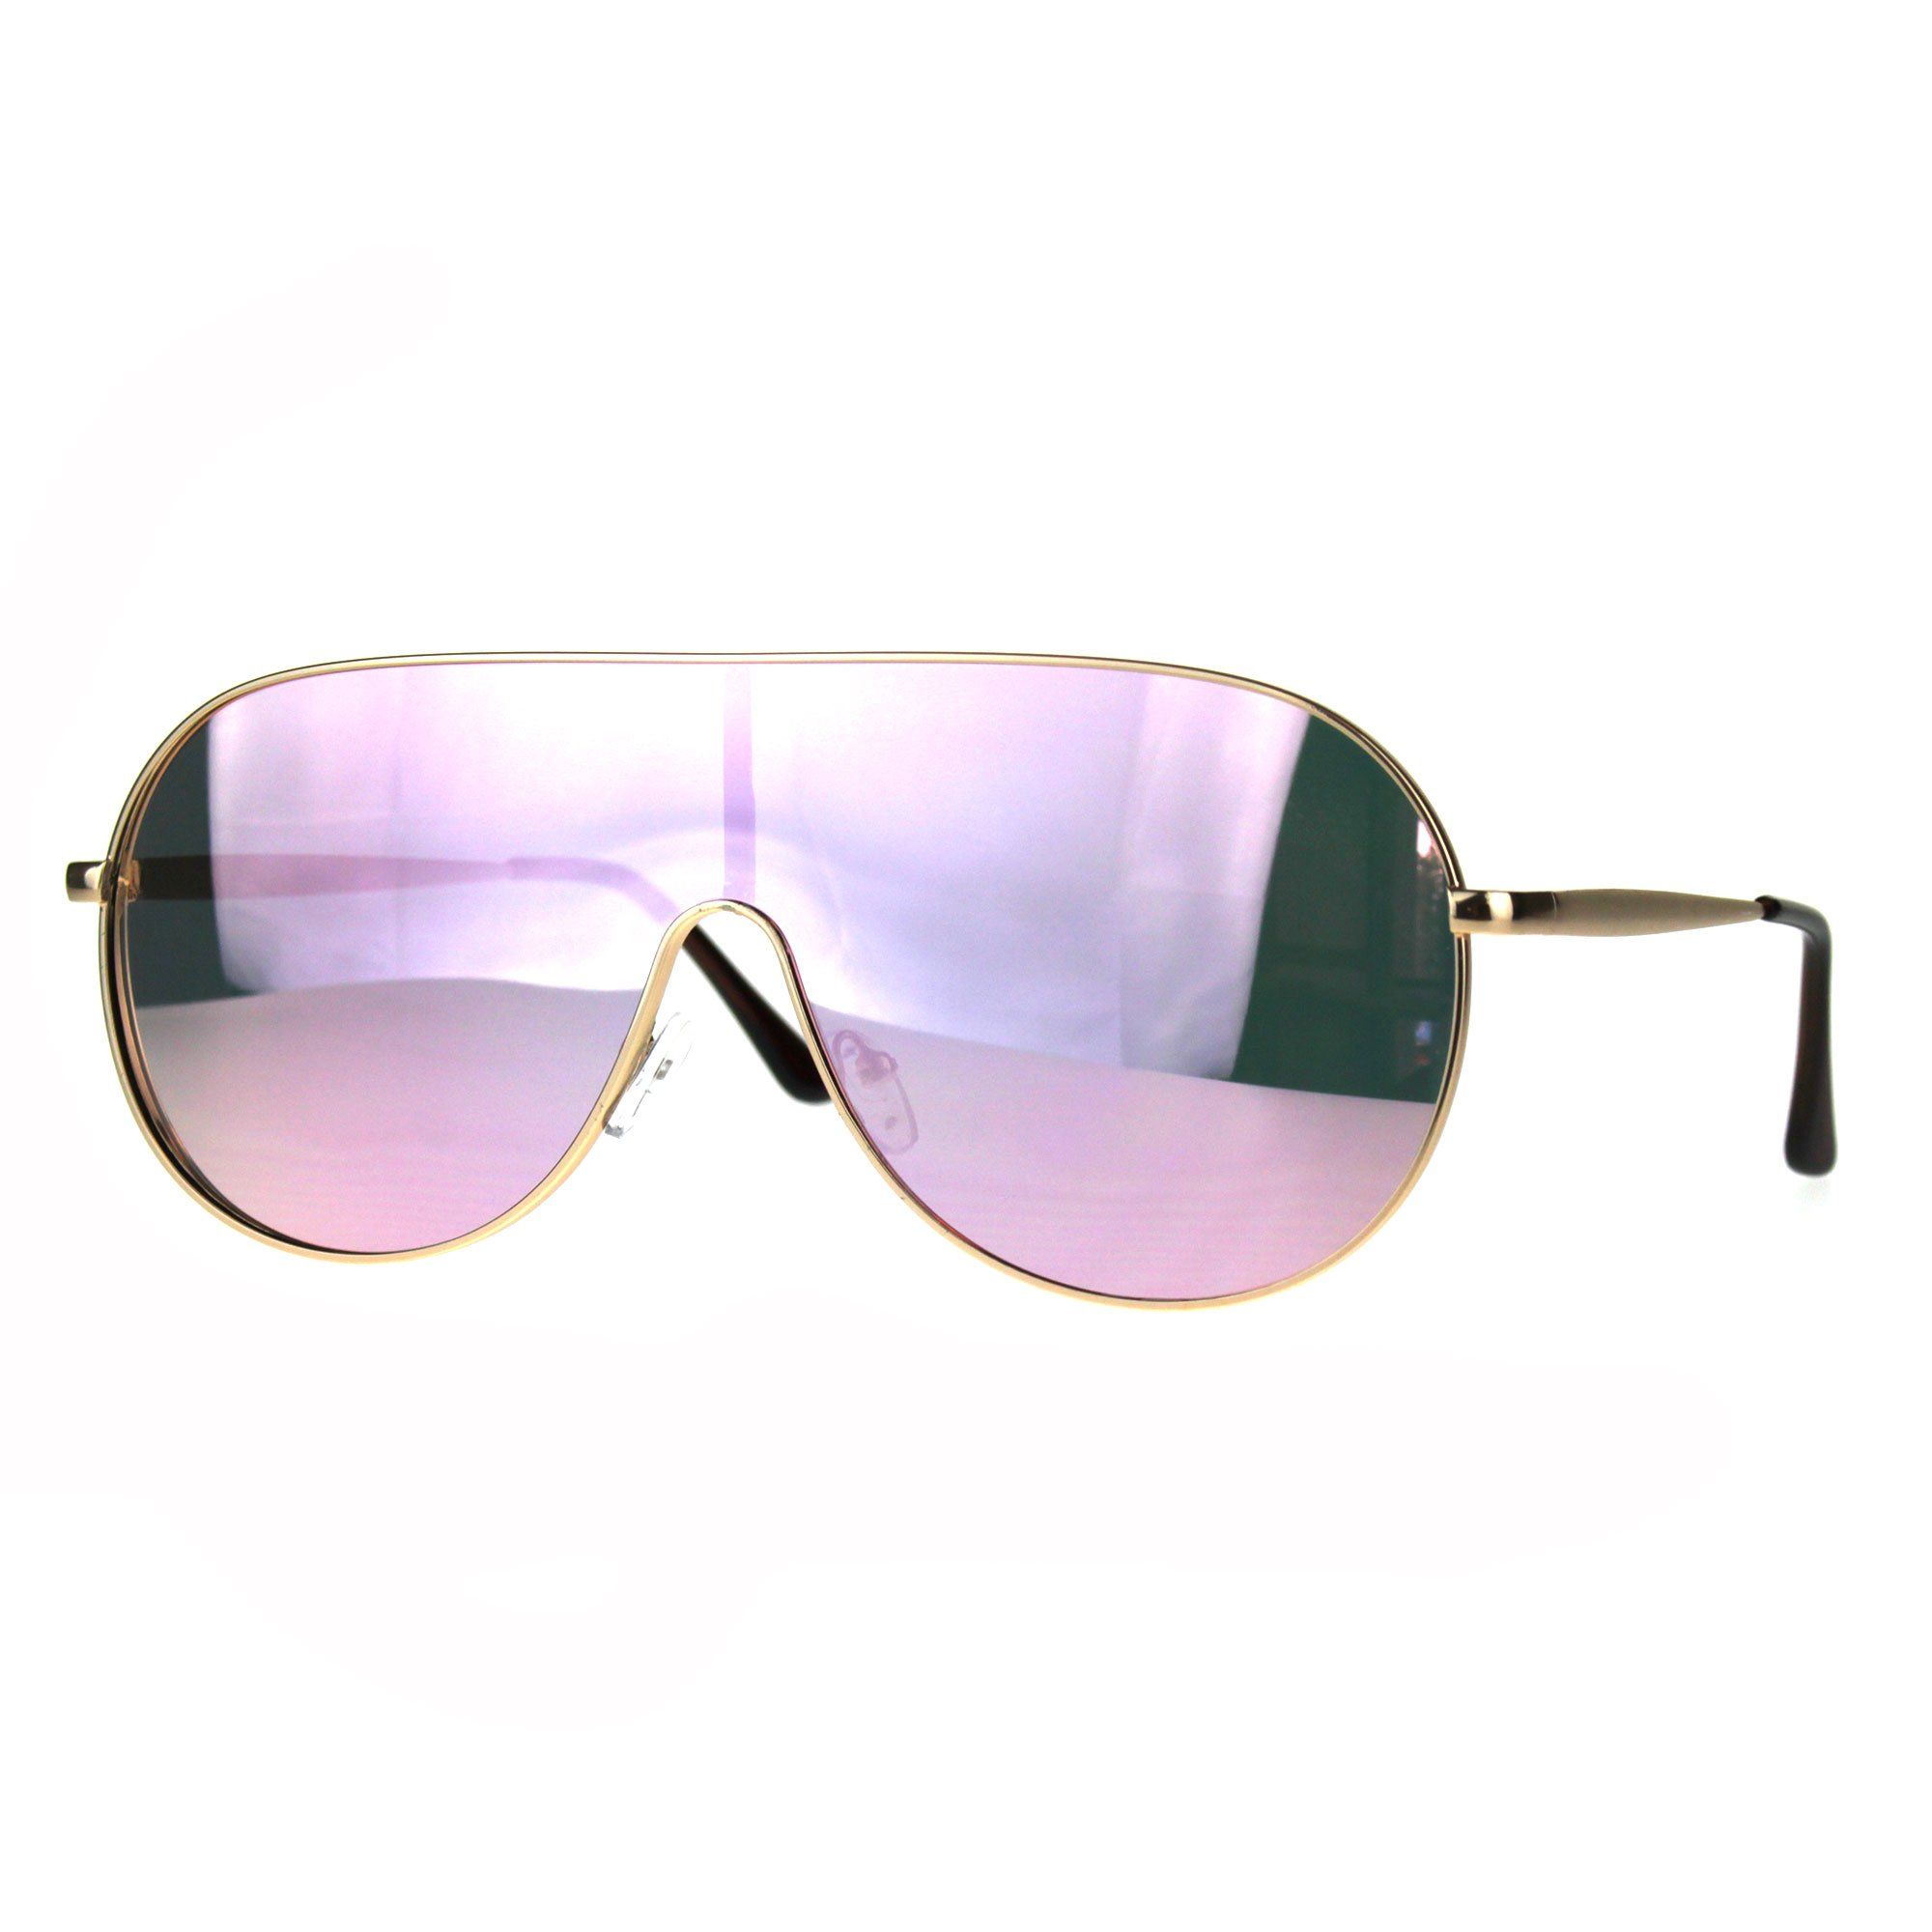 Color Mirror Lens Metal Shield Racer Oversize Sunglasses Gold Pink by SA106